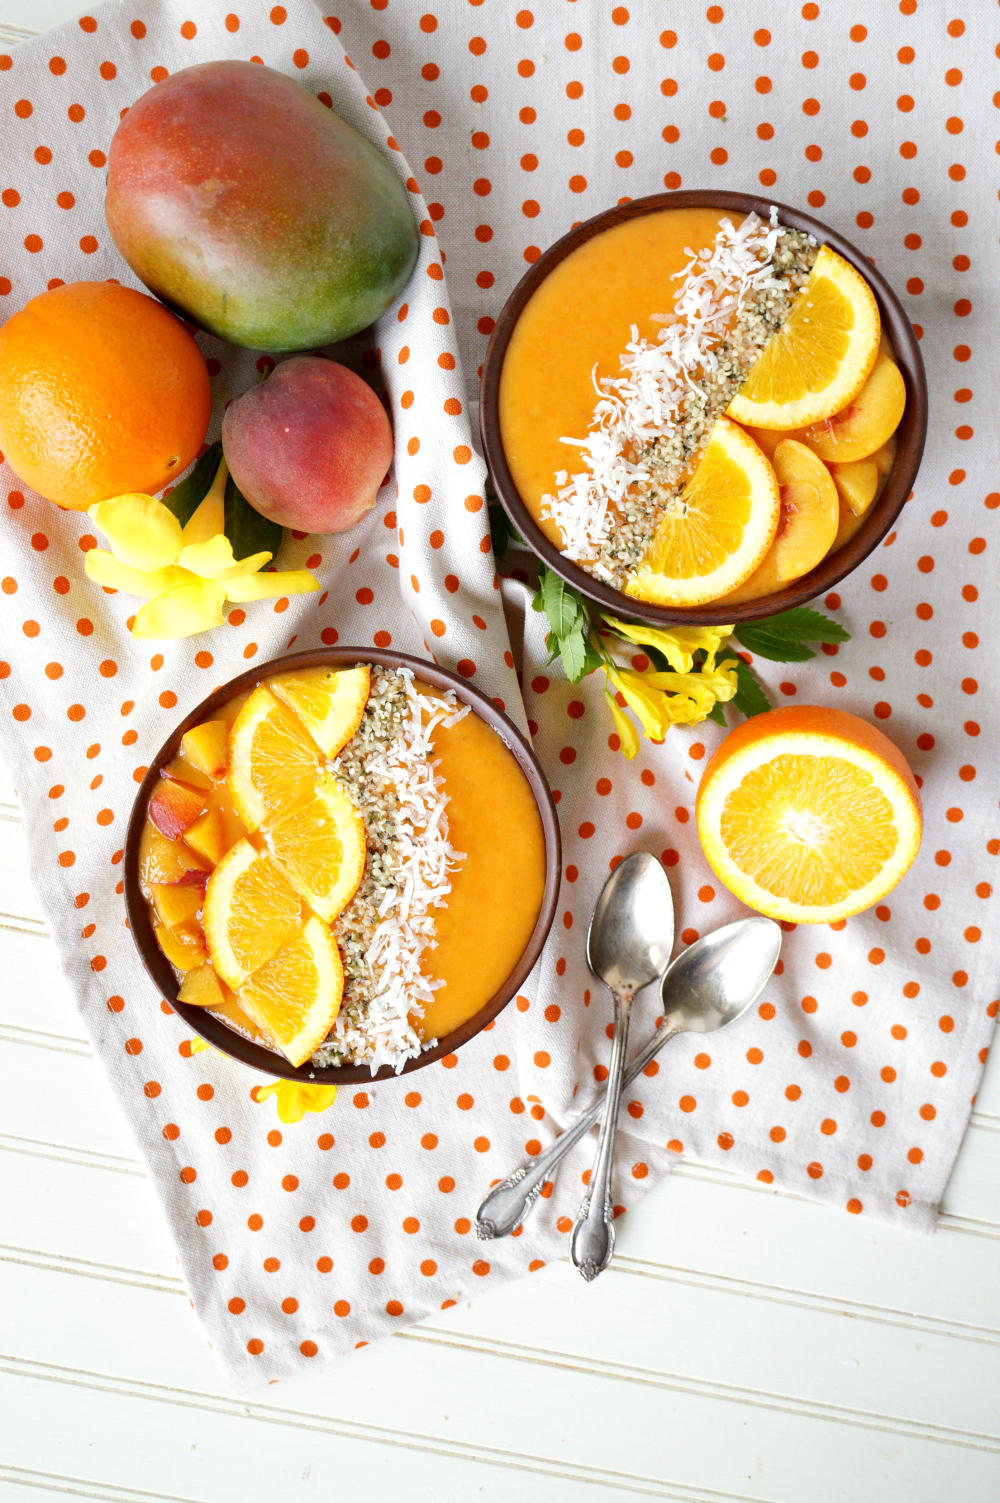 orange sunrise smoothie bowls | The Baking Fairy